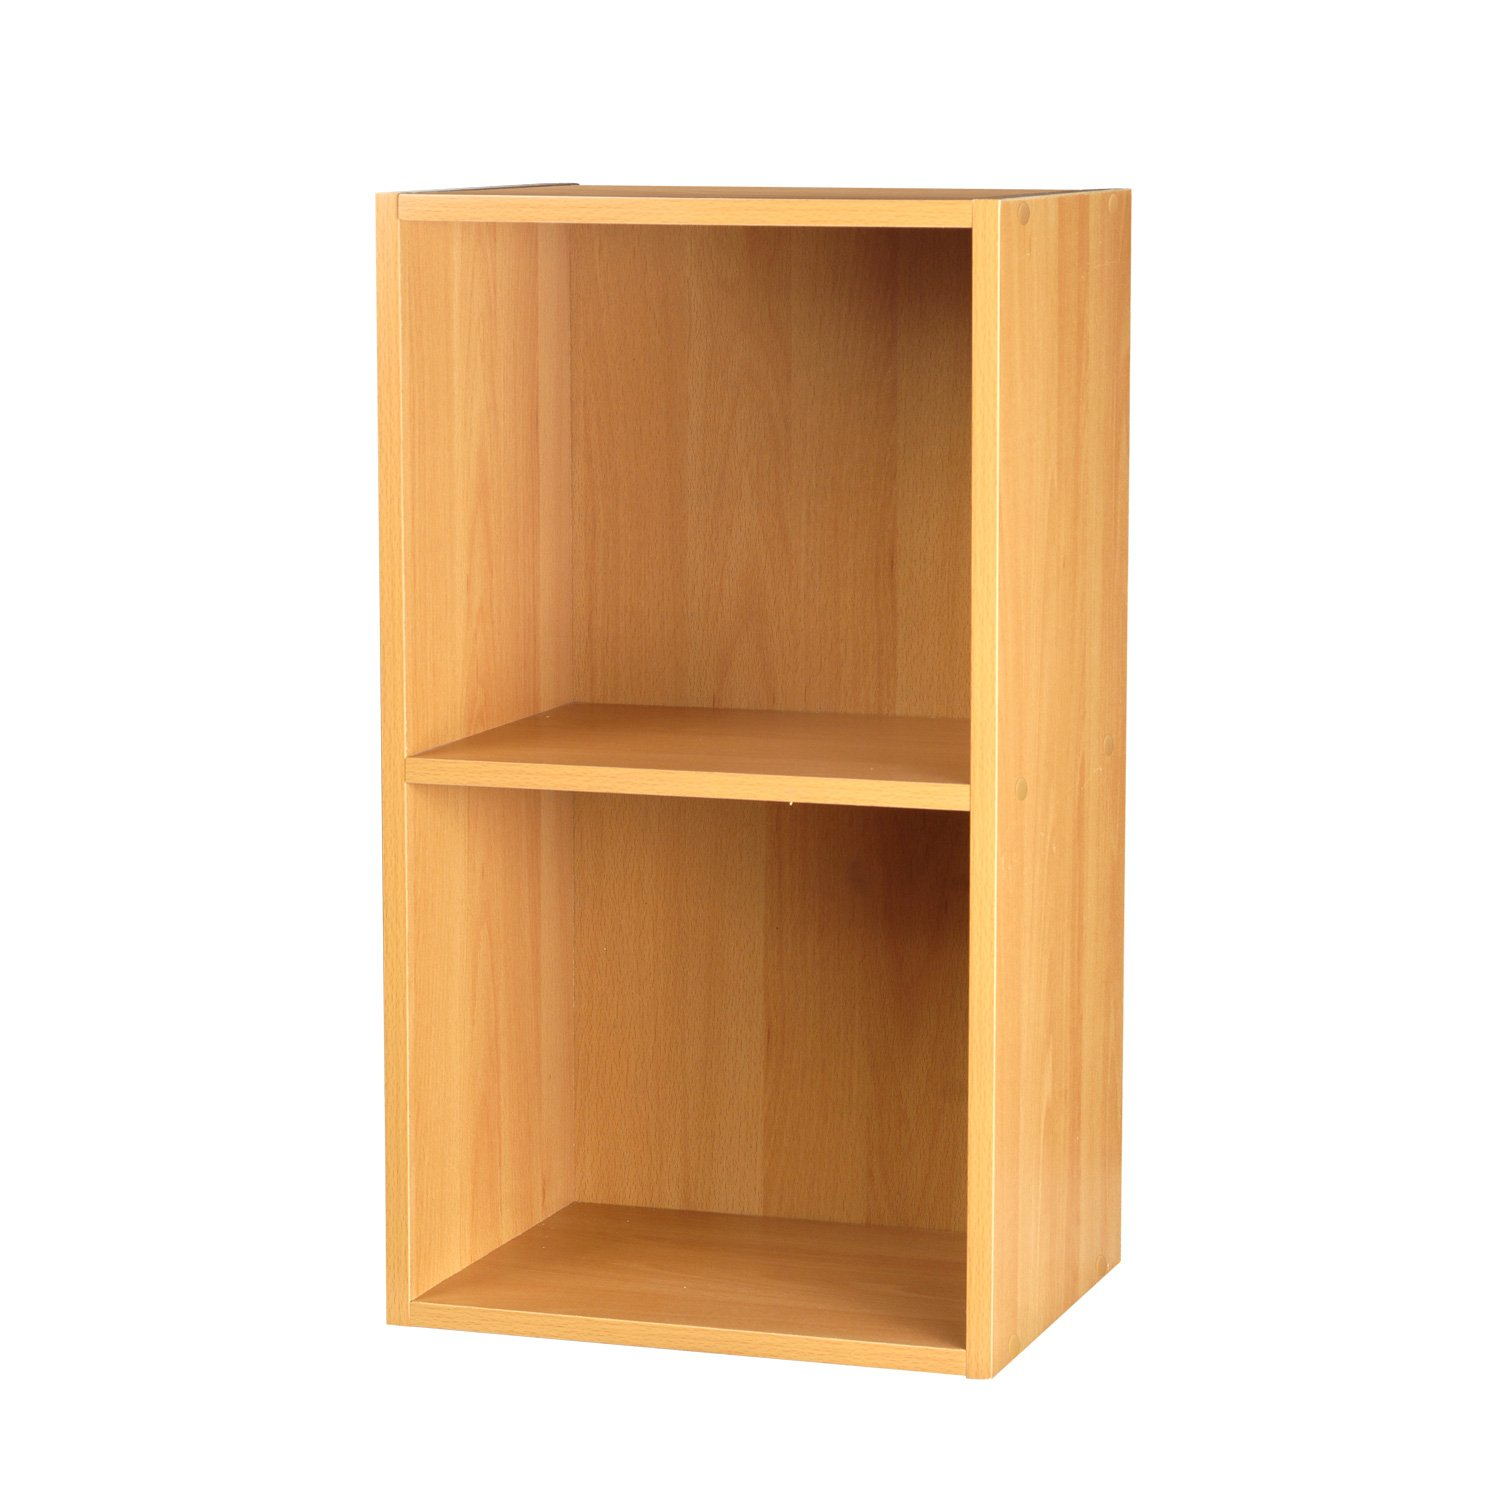 free basics bookshelves way with shelf cube cubes we products voc cubbies formaldehyde c stackable cubby storage scube white